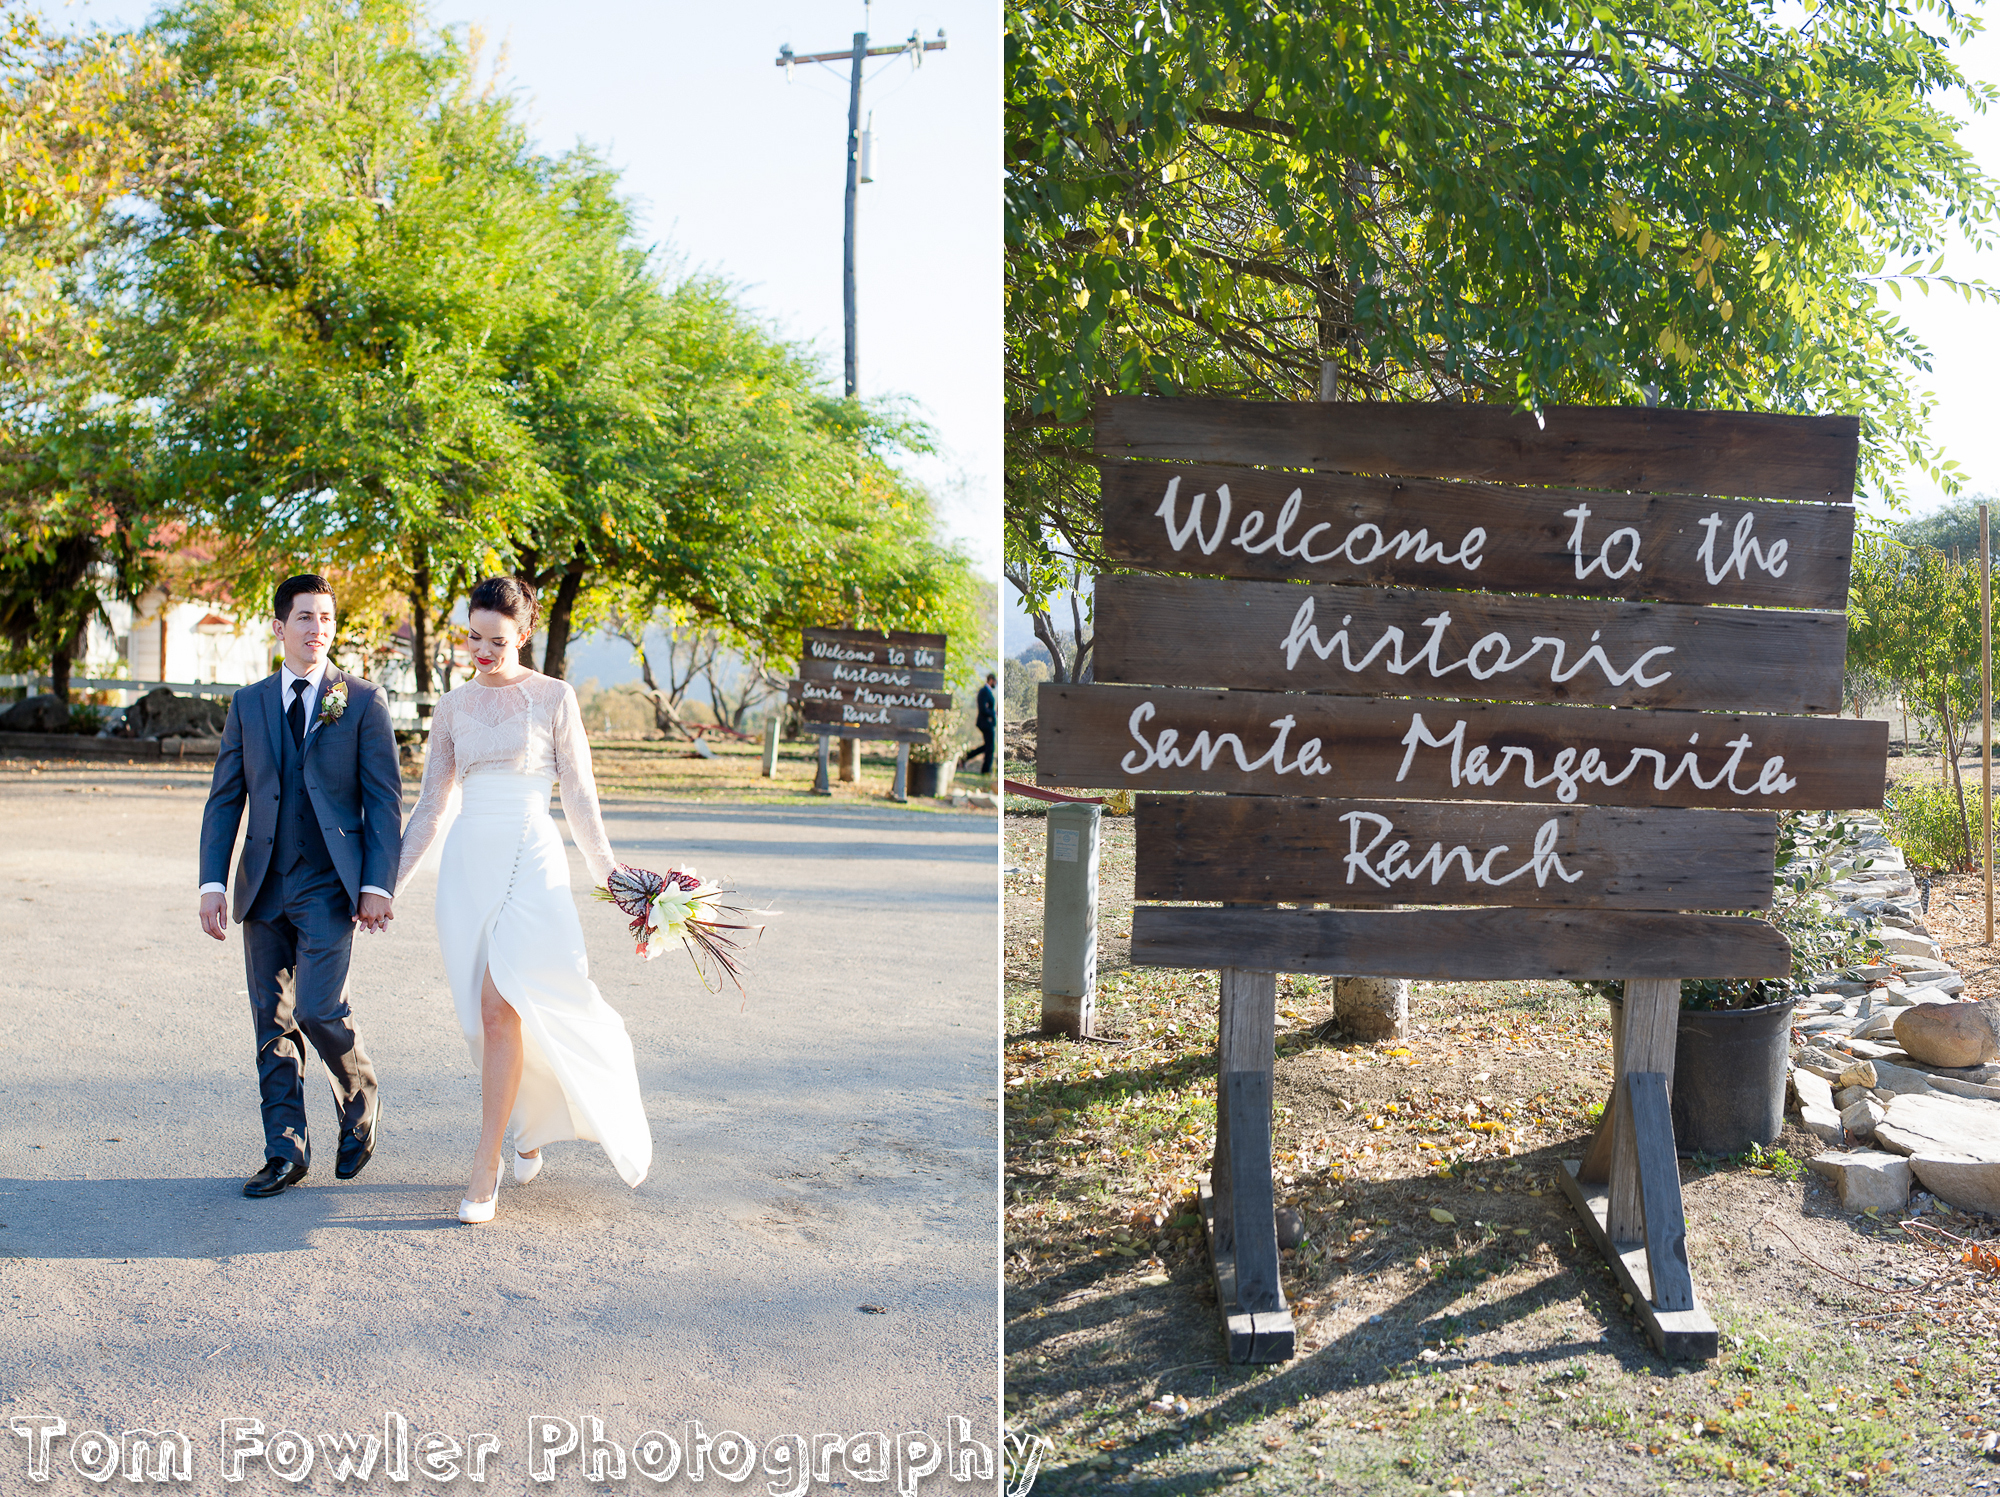 Santa_Margarita_Ranch_Wedding_TomFowlerPhotography_Wedding_Photographer-27